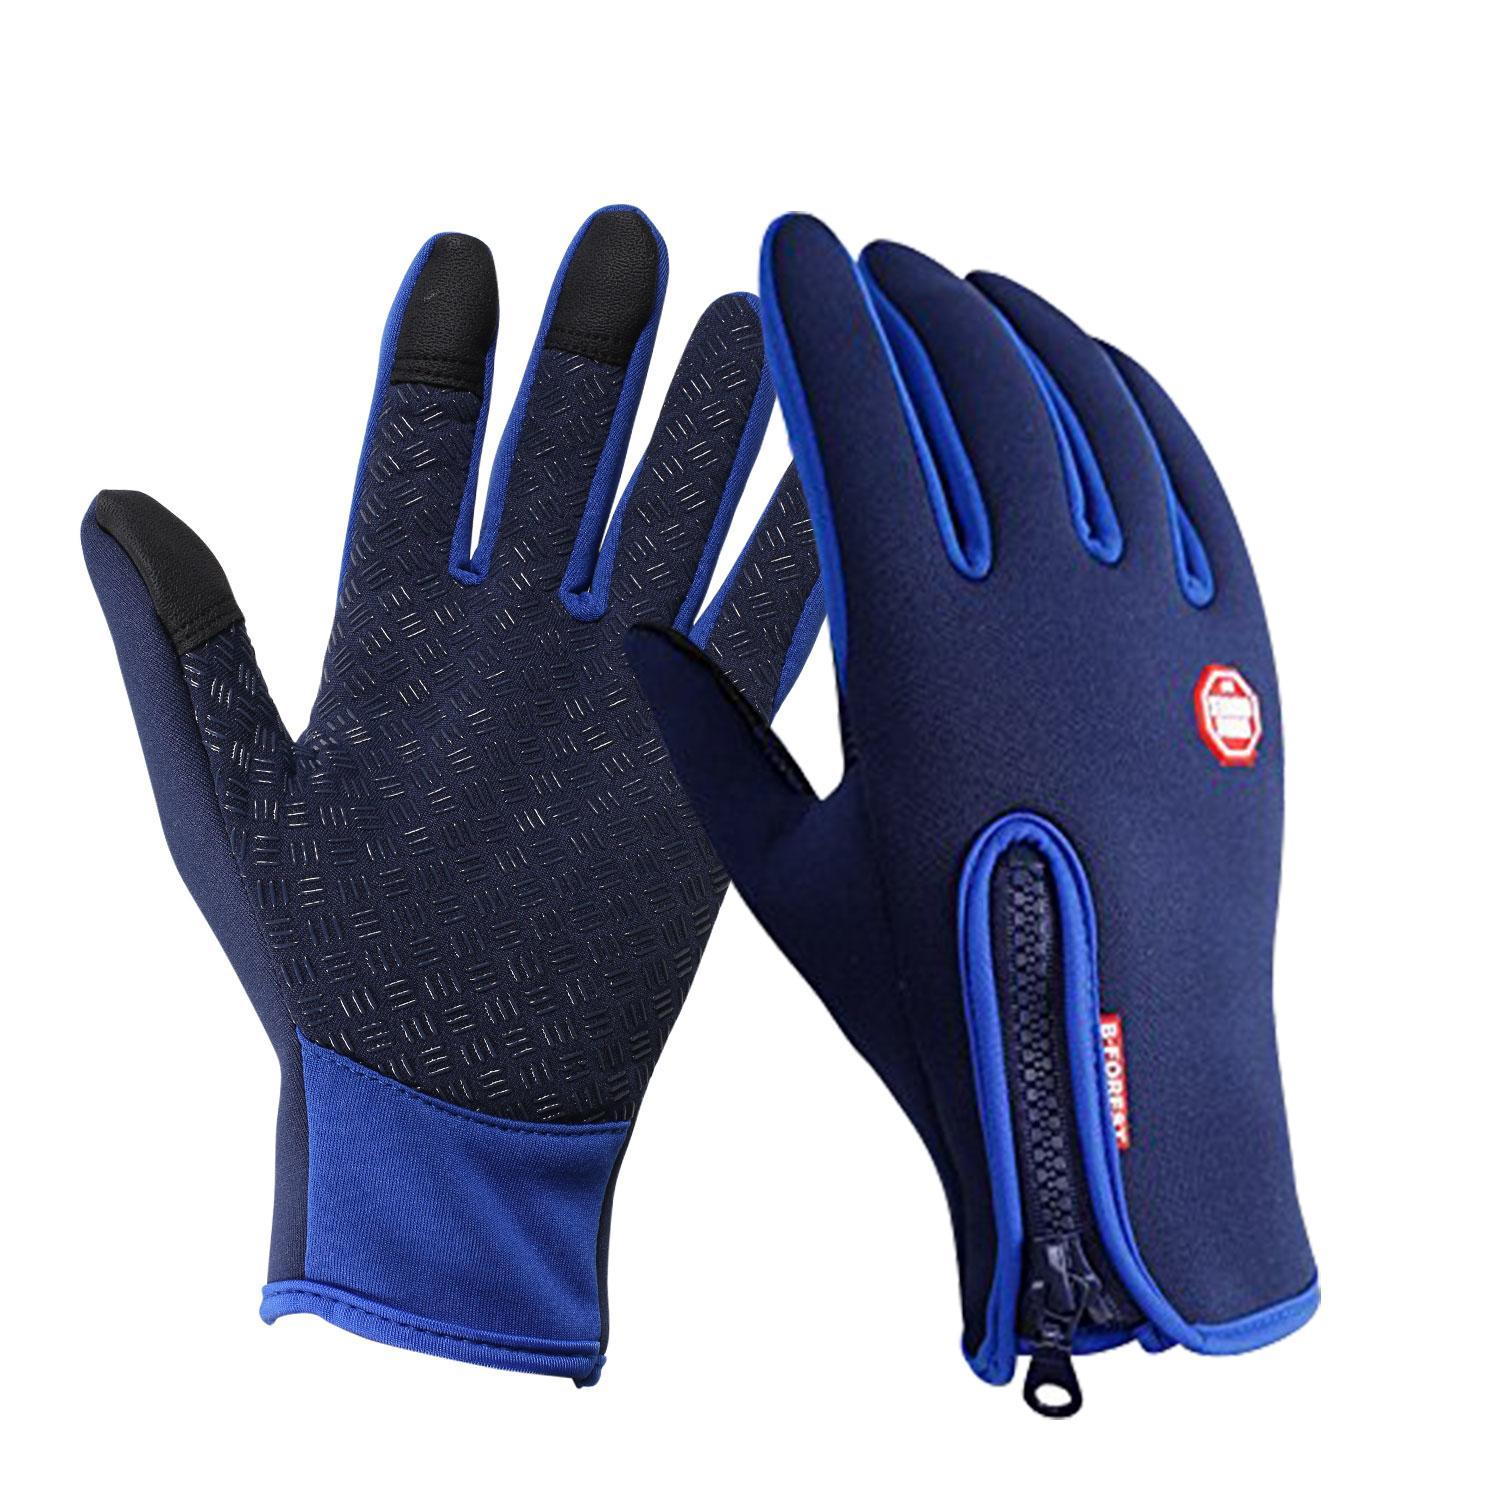 New Unisex Winter Glove with Warm Touchscreen Gloves Texting Driving Fleece Lining Thick Windproof for Riding ROJE